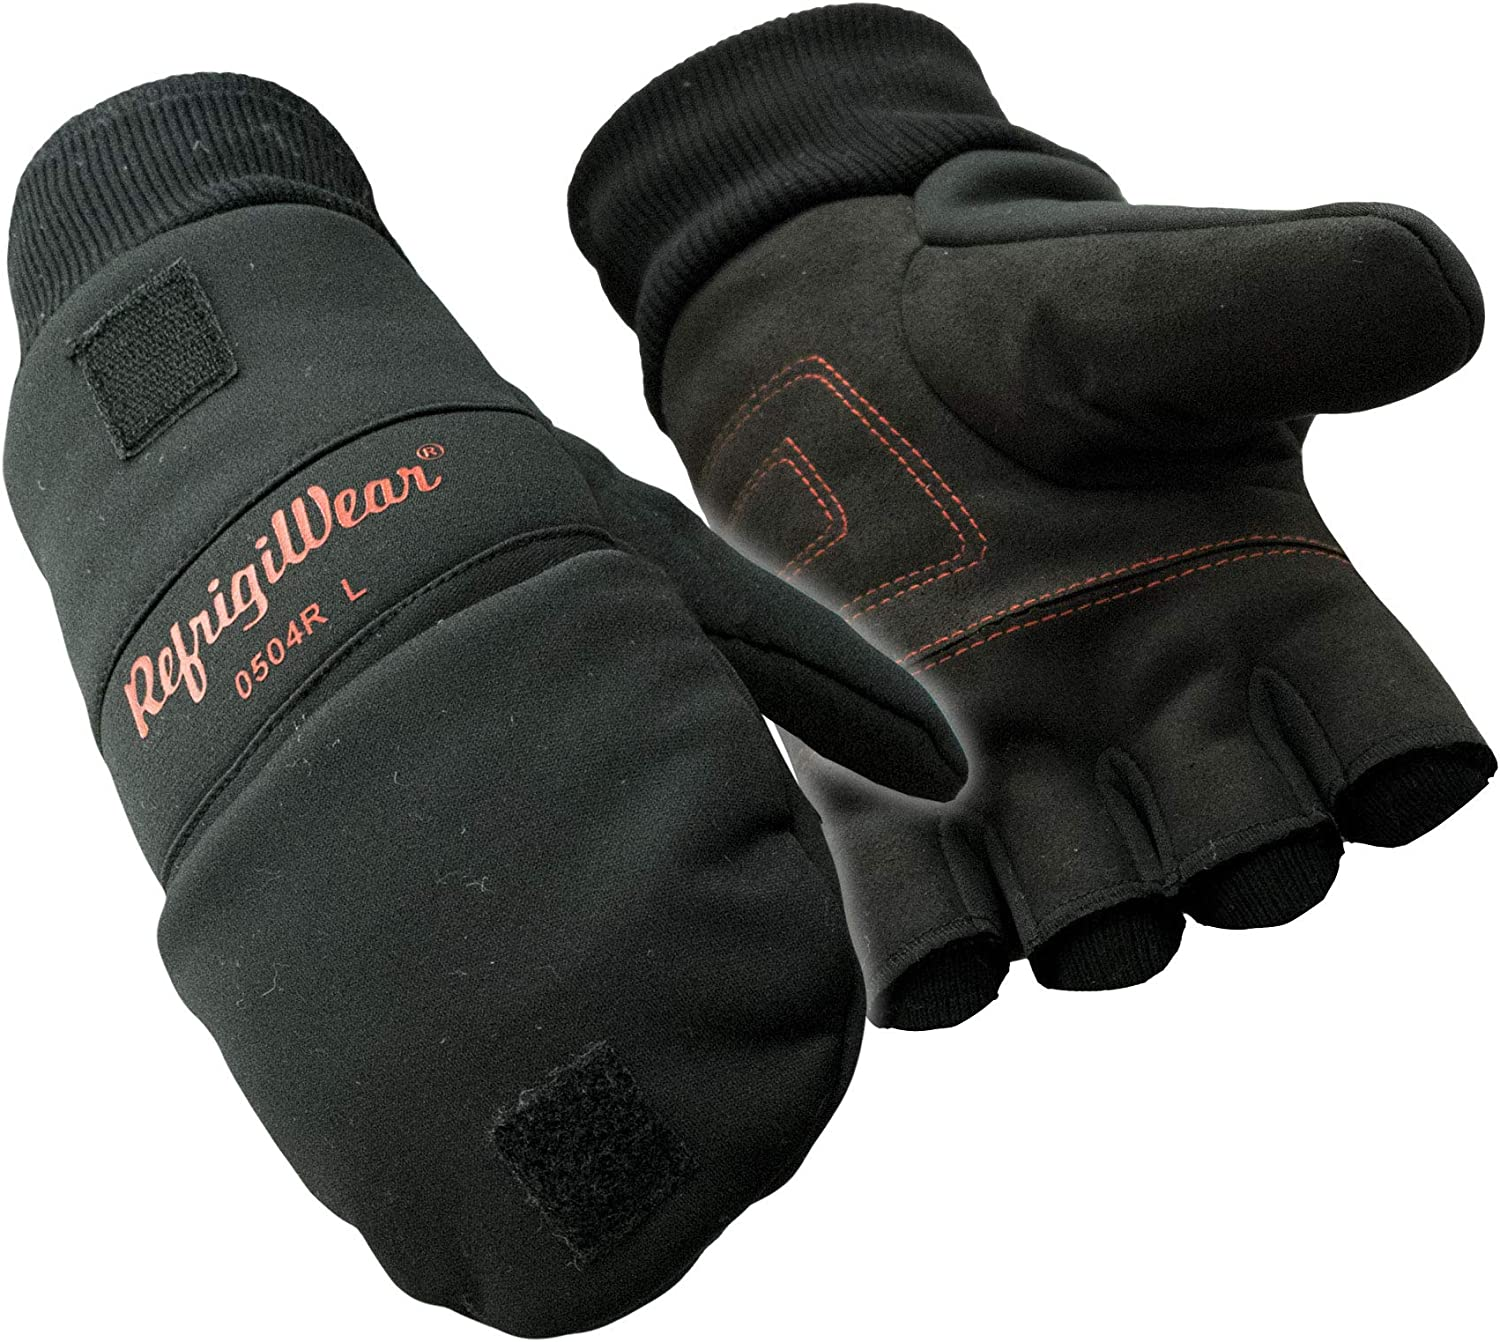 RefrigiWear Fleece Lined Fiberfill Insulated Softshell Convertible Mitten Gloves at  Men's Clothing store